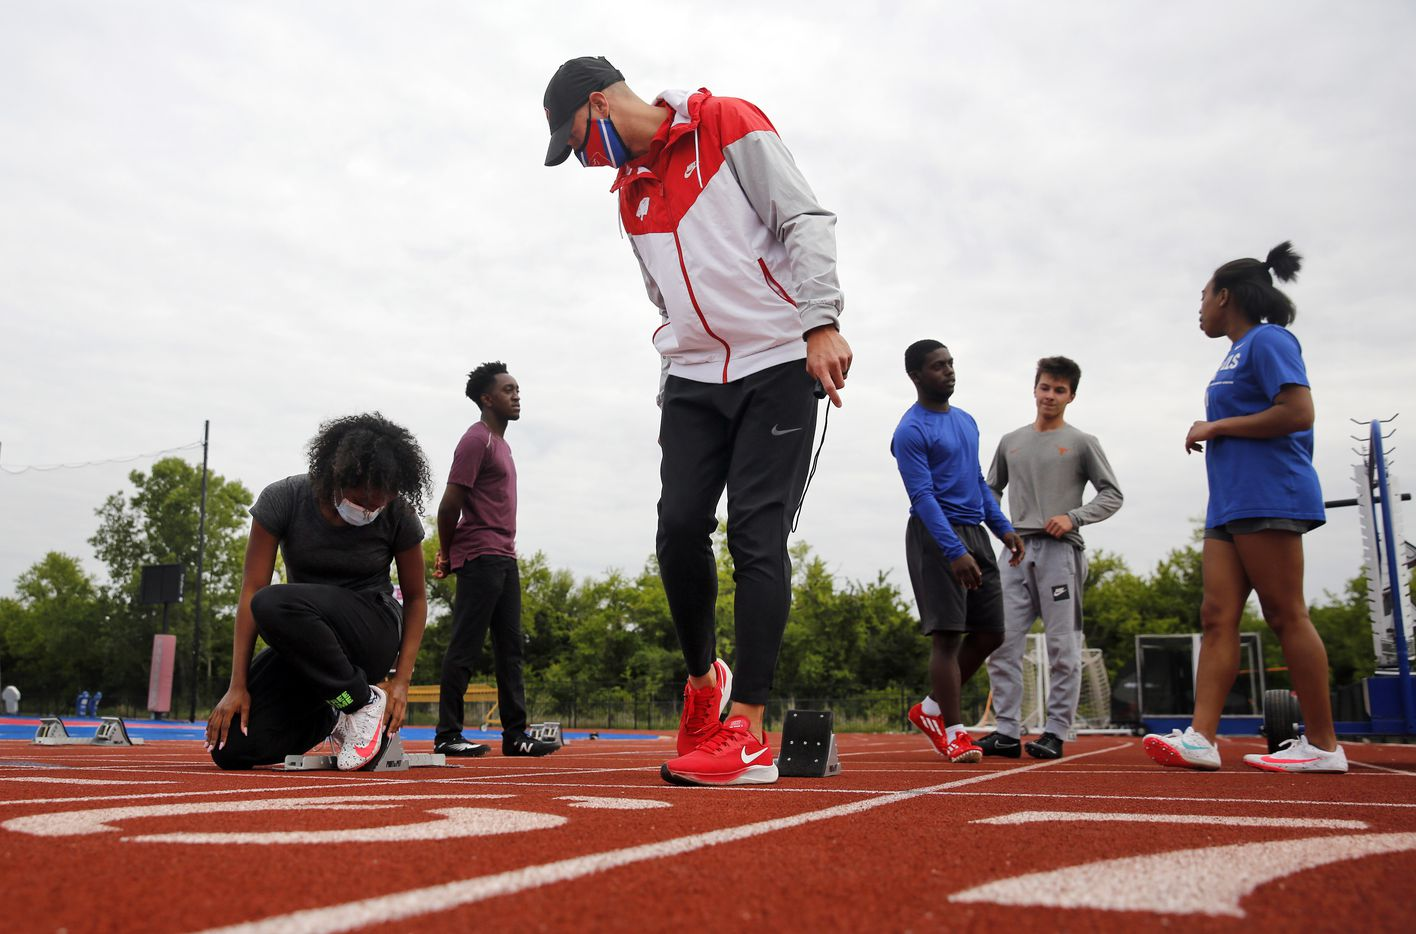 Parish Episcopal head track coach Jeremy Wariner shows start block technique to sophomore sprinter Samantha Ward (left) during practice at the Dallas school, Wednesday, April 21, 2021.  The former Arlington Lamar and Baylor star who won three Olympic gold medals -- one in the 400 meters and two in the 4x400 relay, took over the program after retiring from competition. (Tom Fox/The Dallas Morning News)